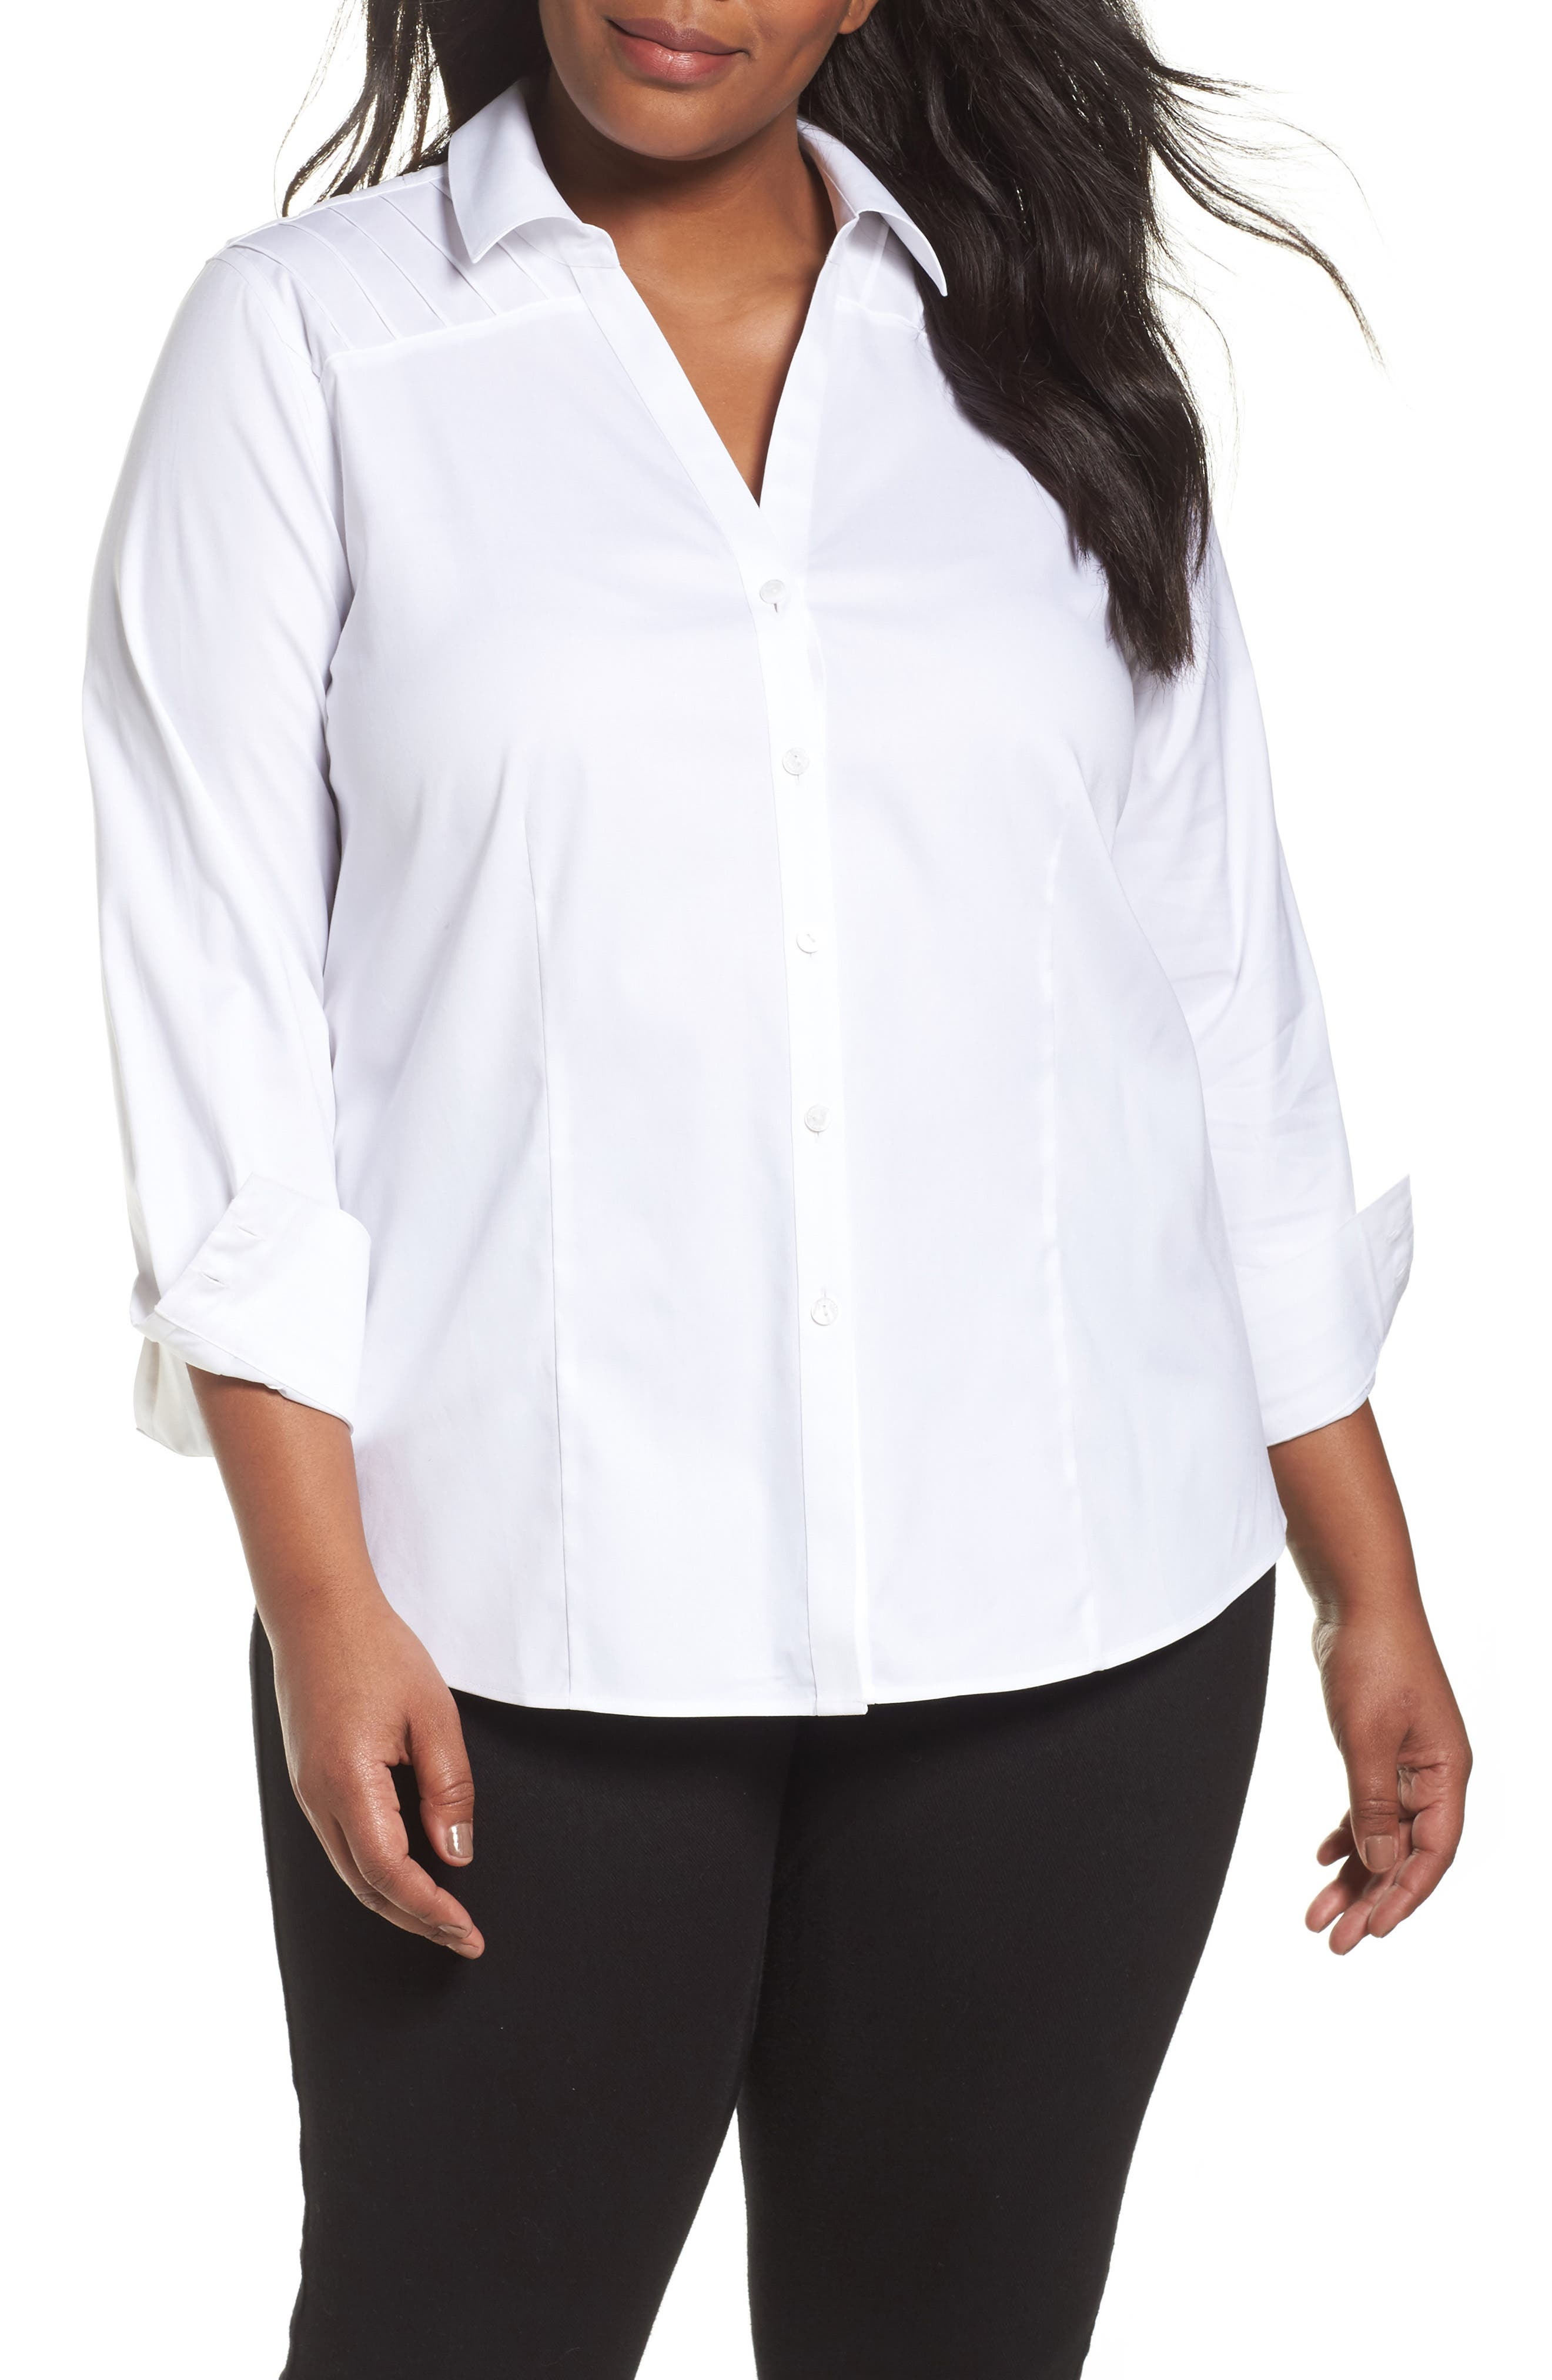 Alternate Image 1 Selected - Foxcroft Rita Solid Stretch Cotton Top (Plus Size)